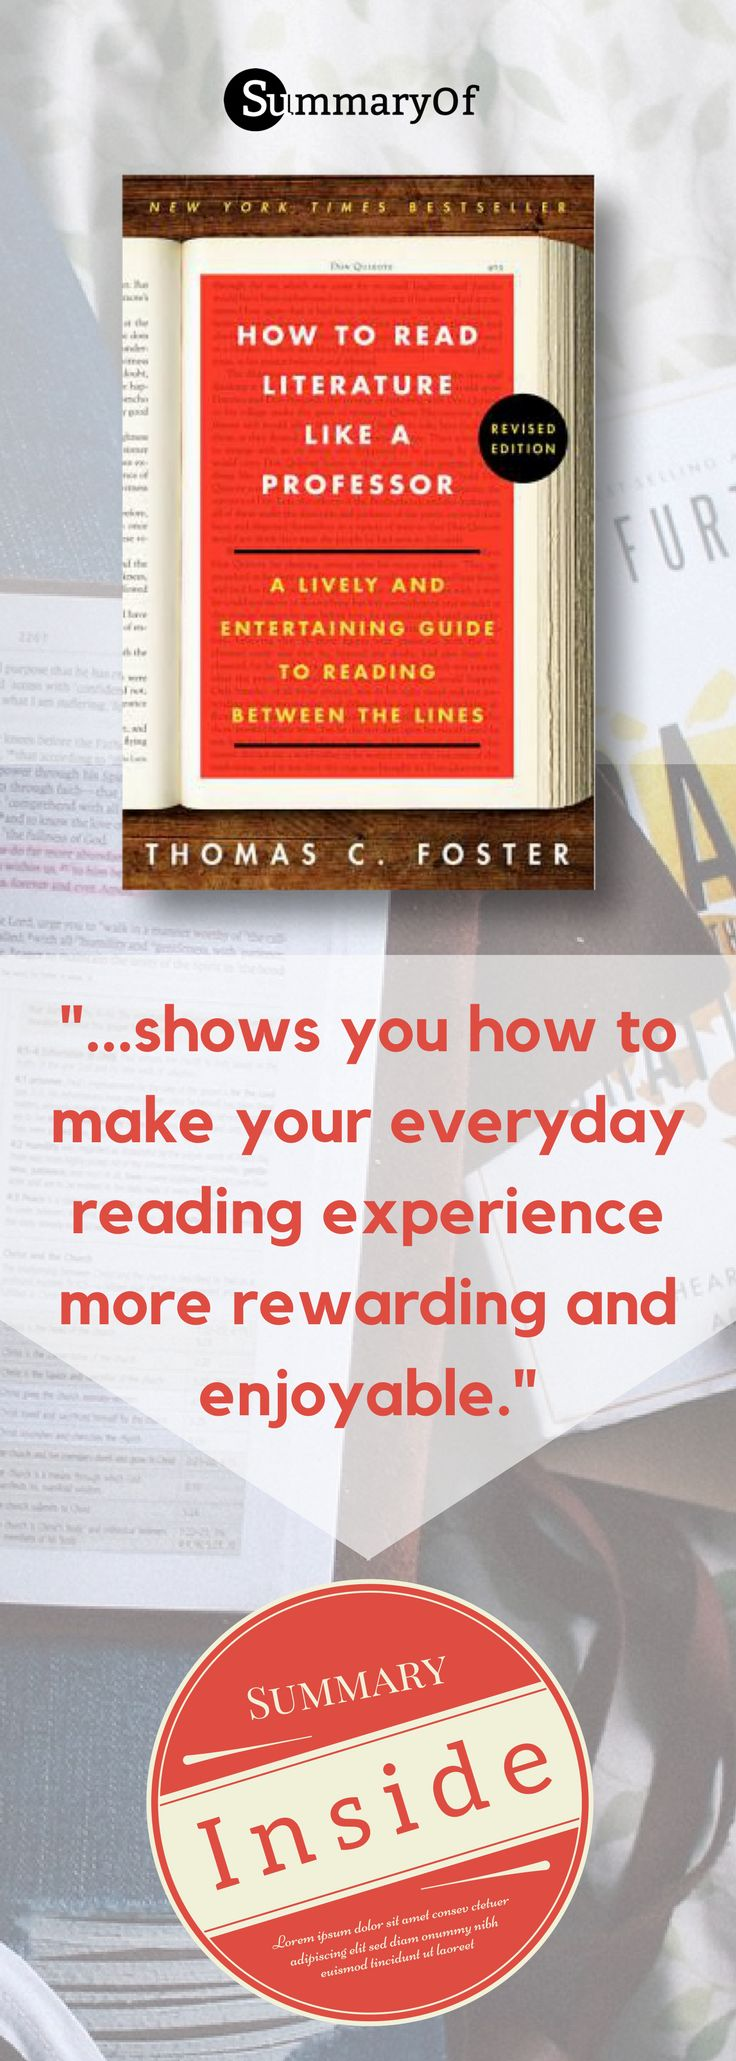 Get more out of your time with books - read like a professor! Click to read summary! #professor #litterature #nonfiction #summary #15min #books